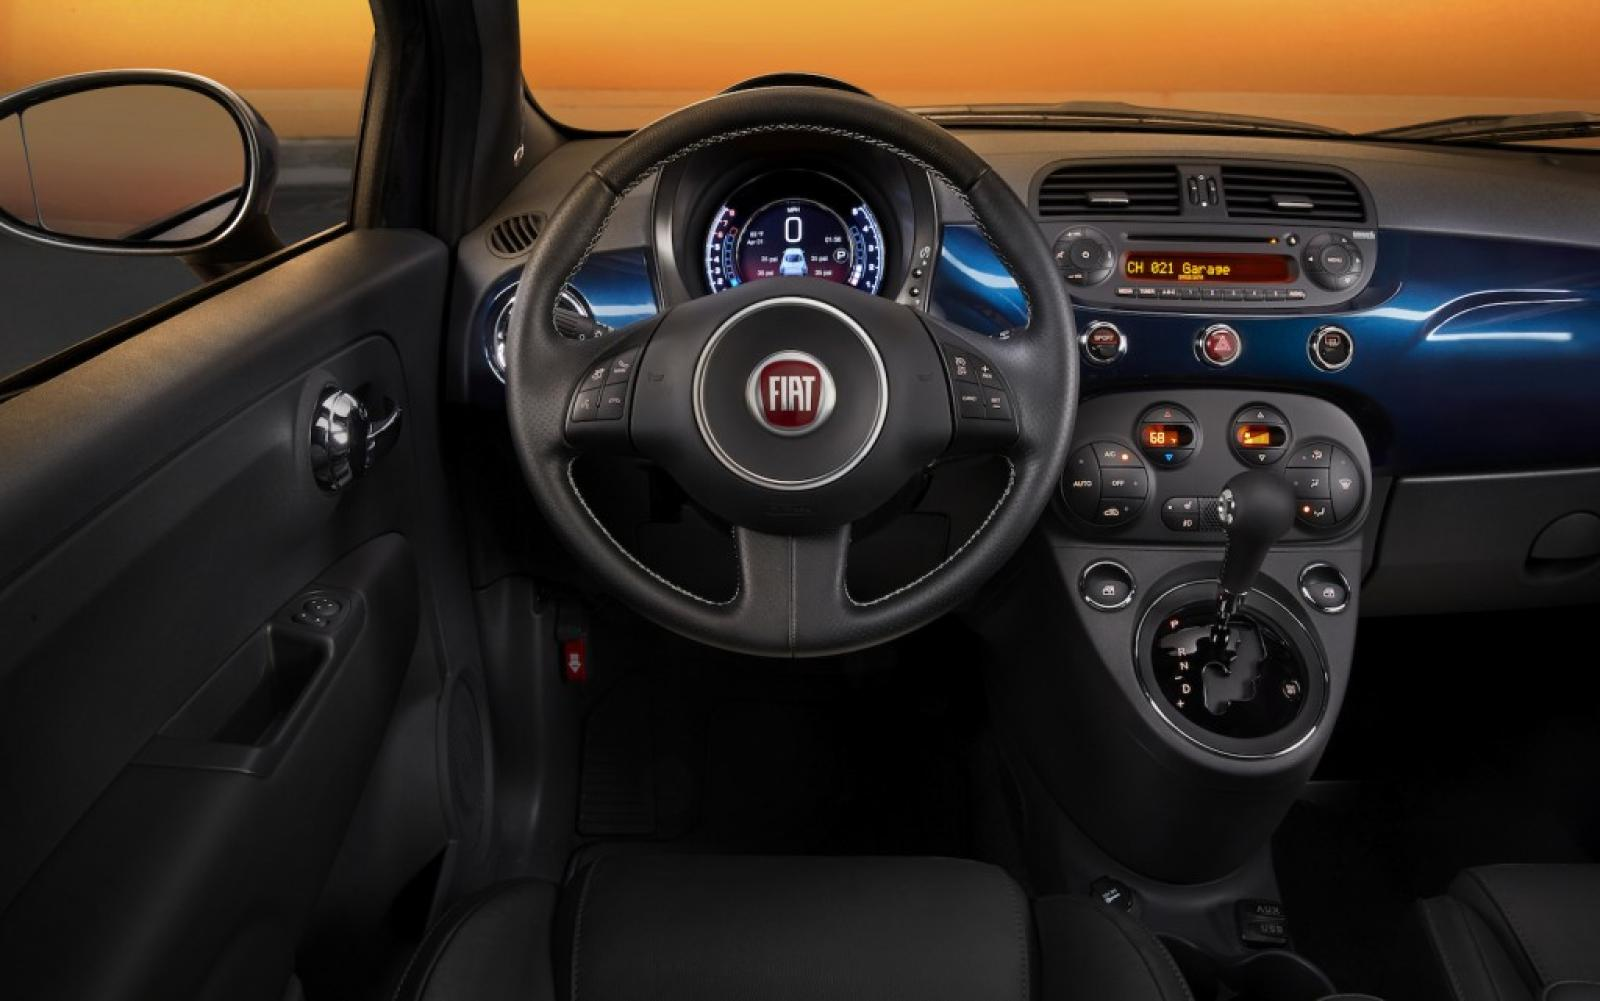 2015 fiat 500e information and photos zombiedrive. Black Bedroom Furniture Sets. Home Design Ideas